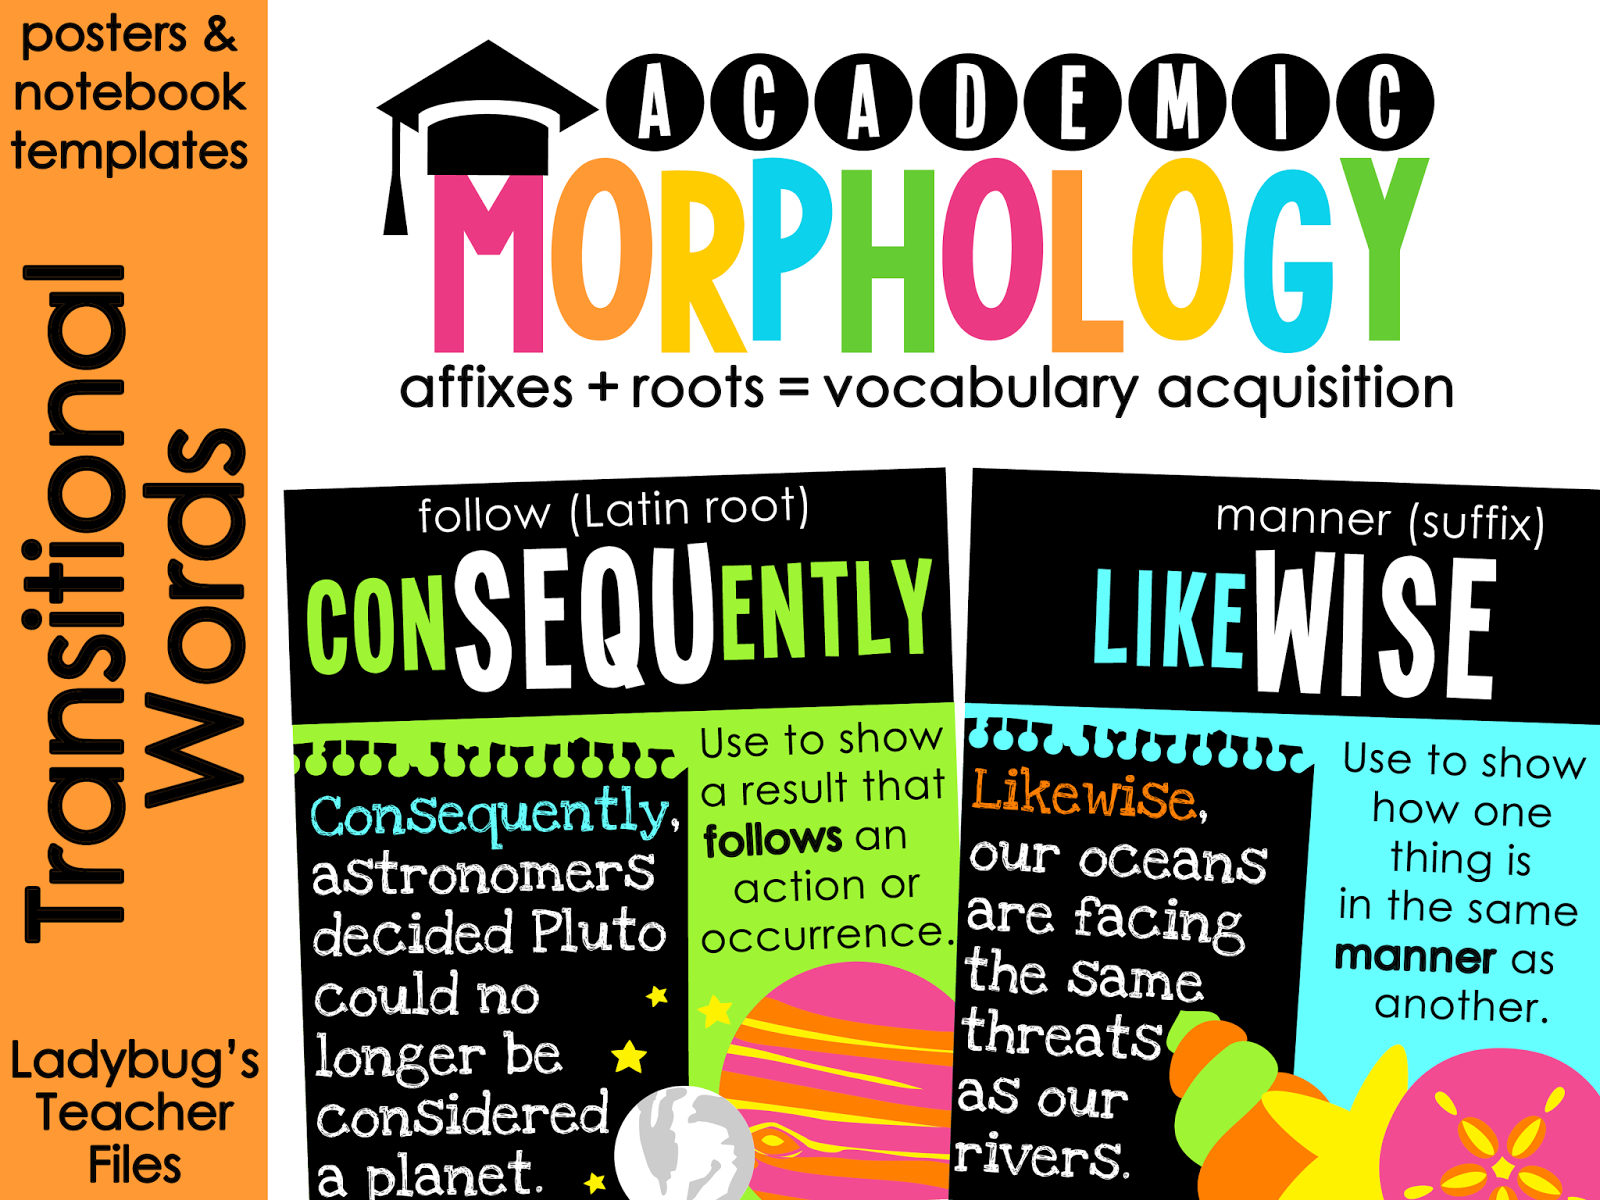 http://www.teacherspayteachers.com/Product/Academic-Morphology-Transitional-Words-Posters-Notebook-Templates-1034697